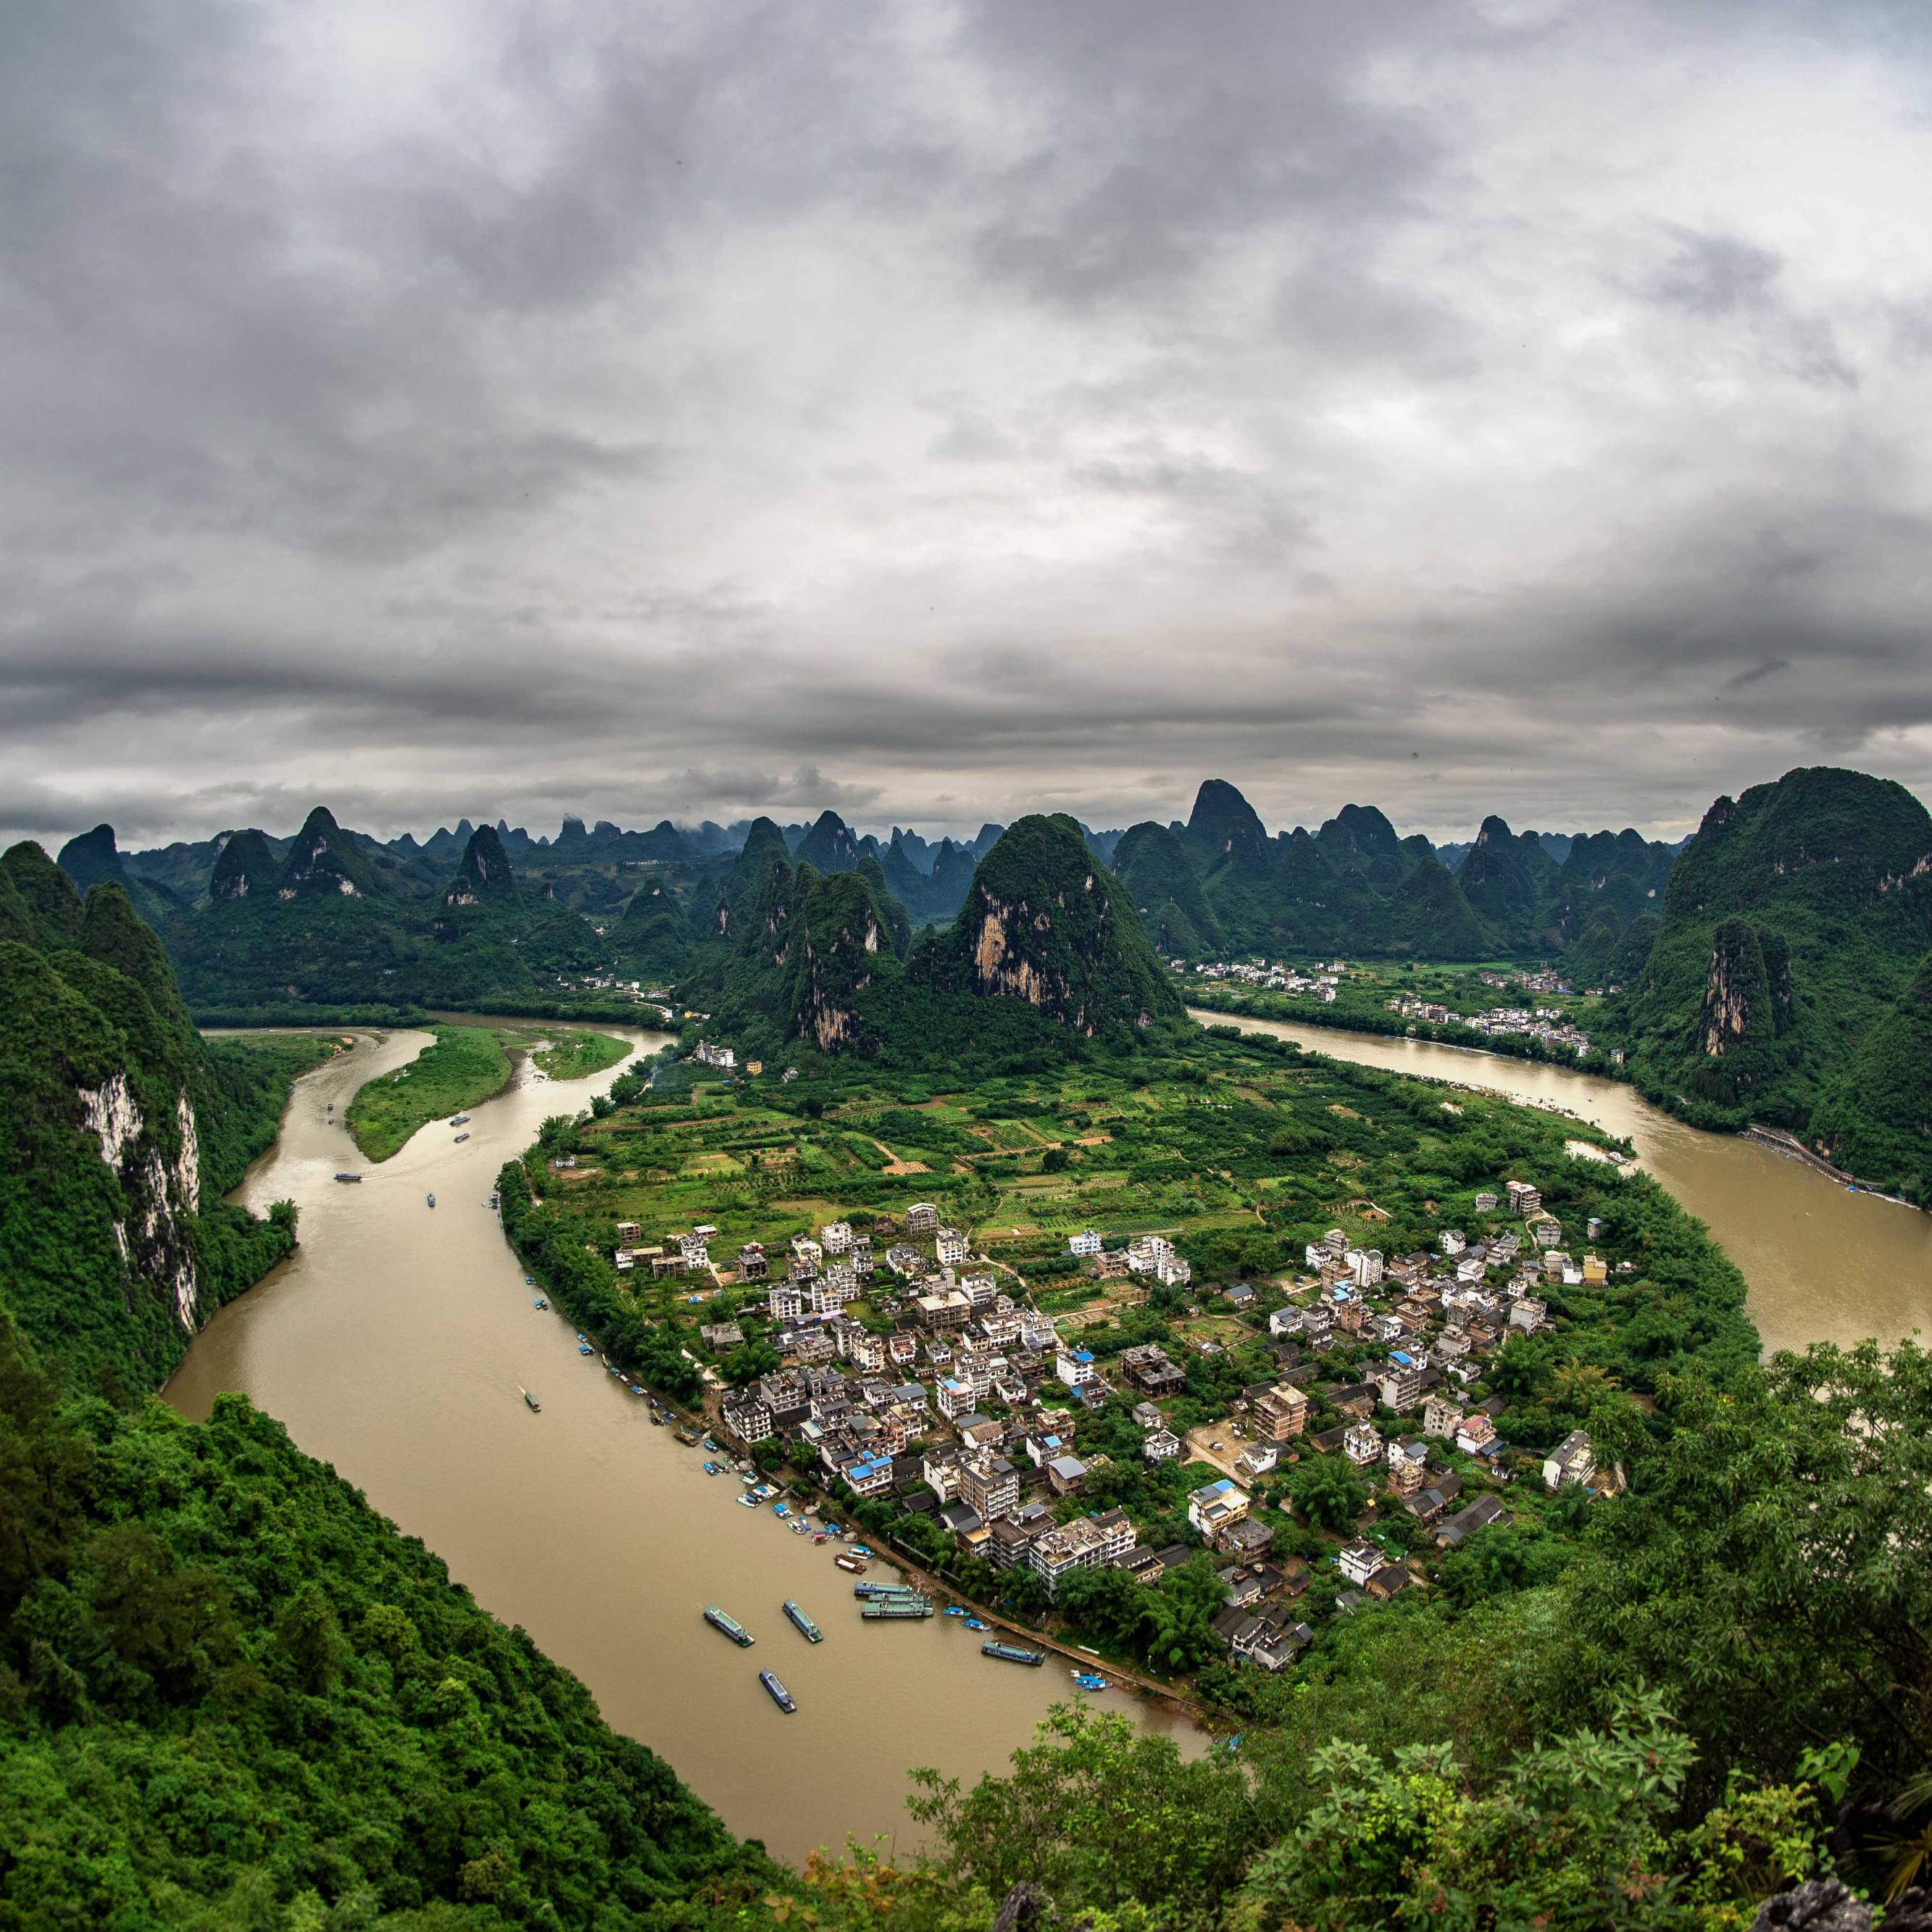 Overview over Xingping